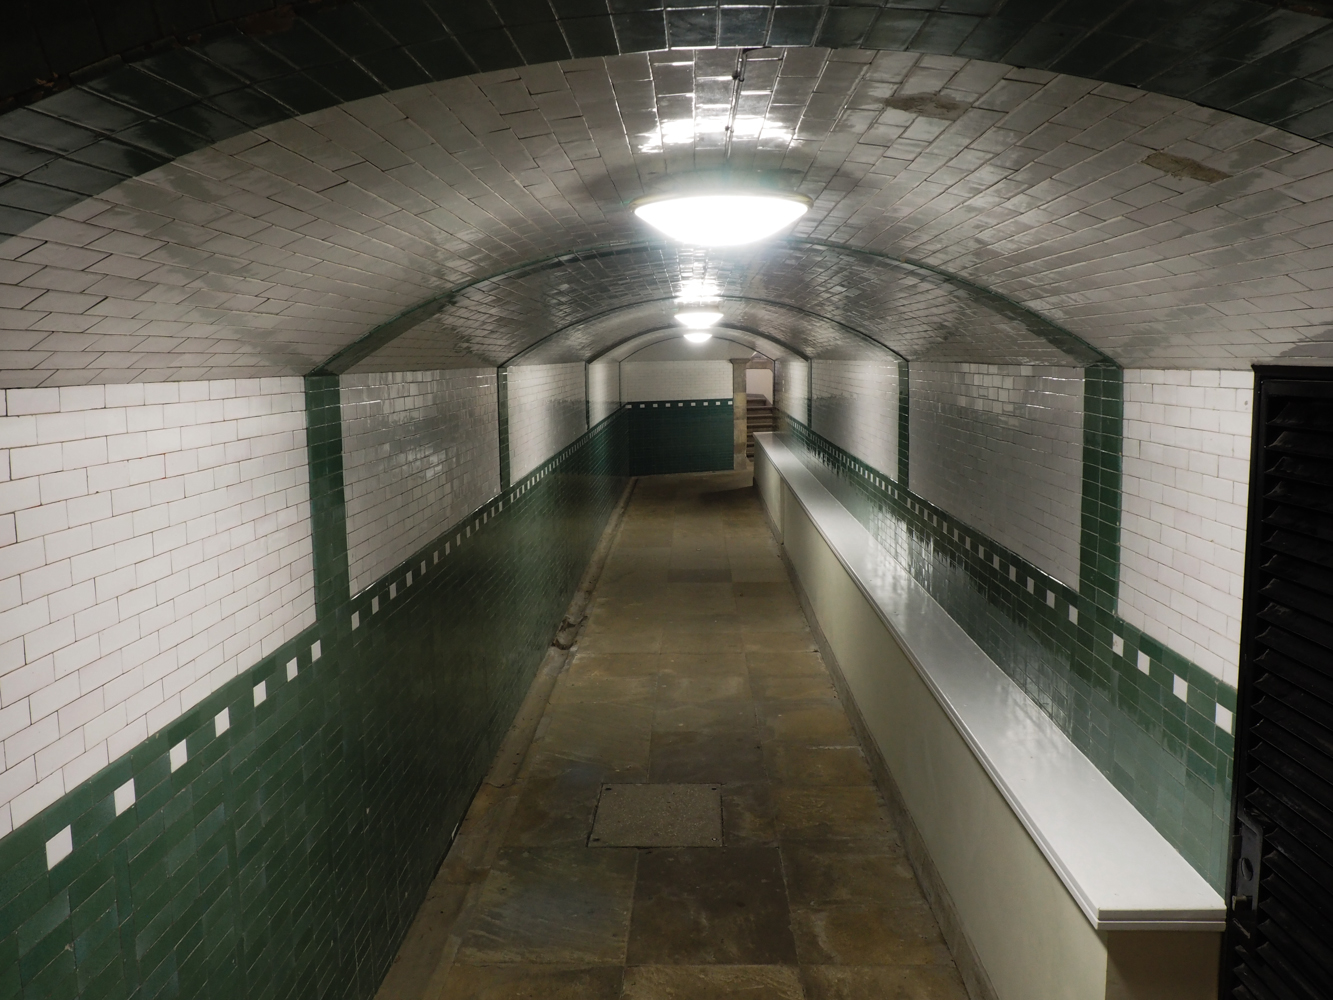 Emmanuel College Subway